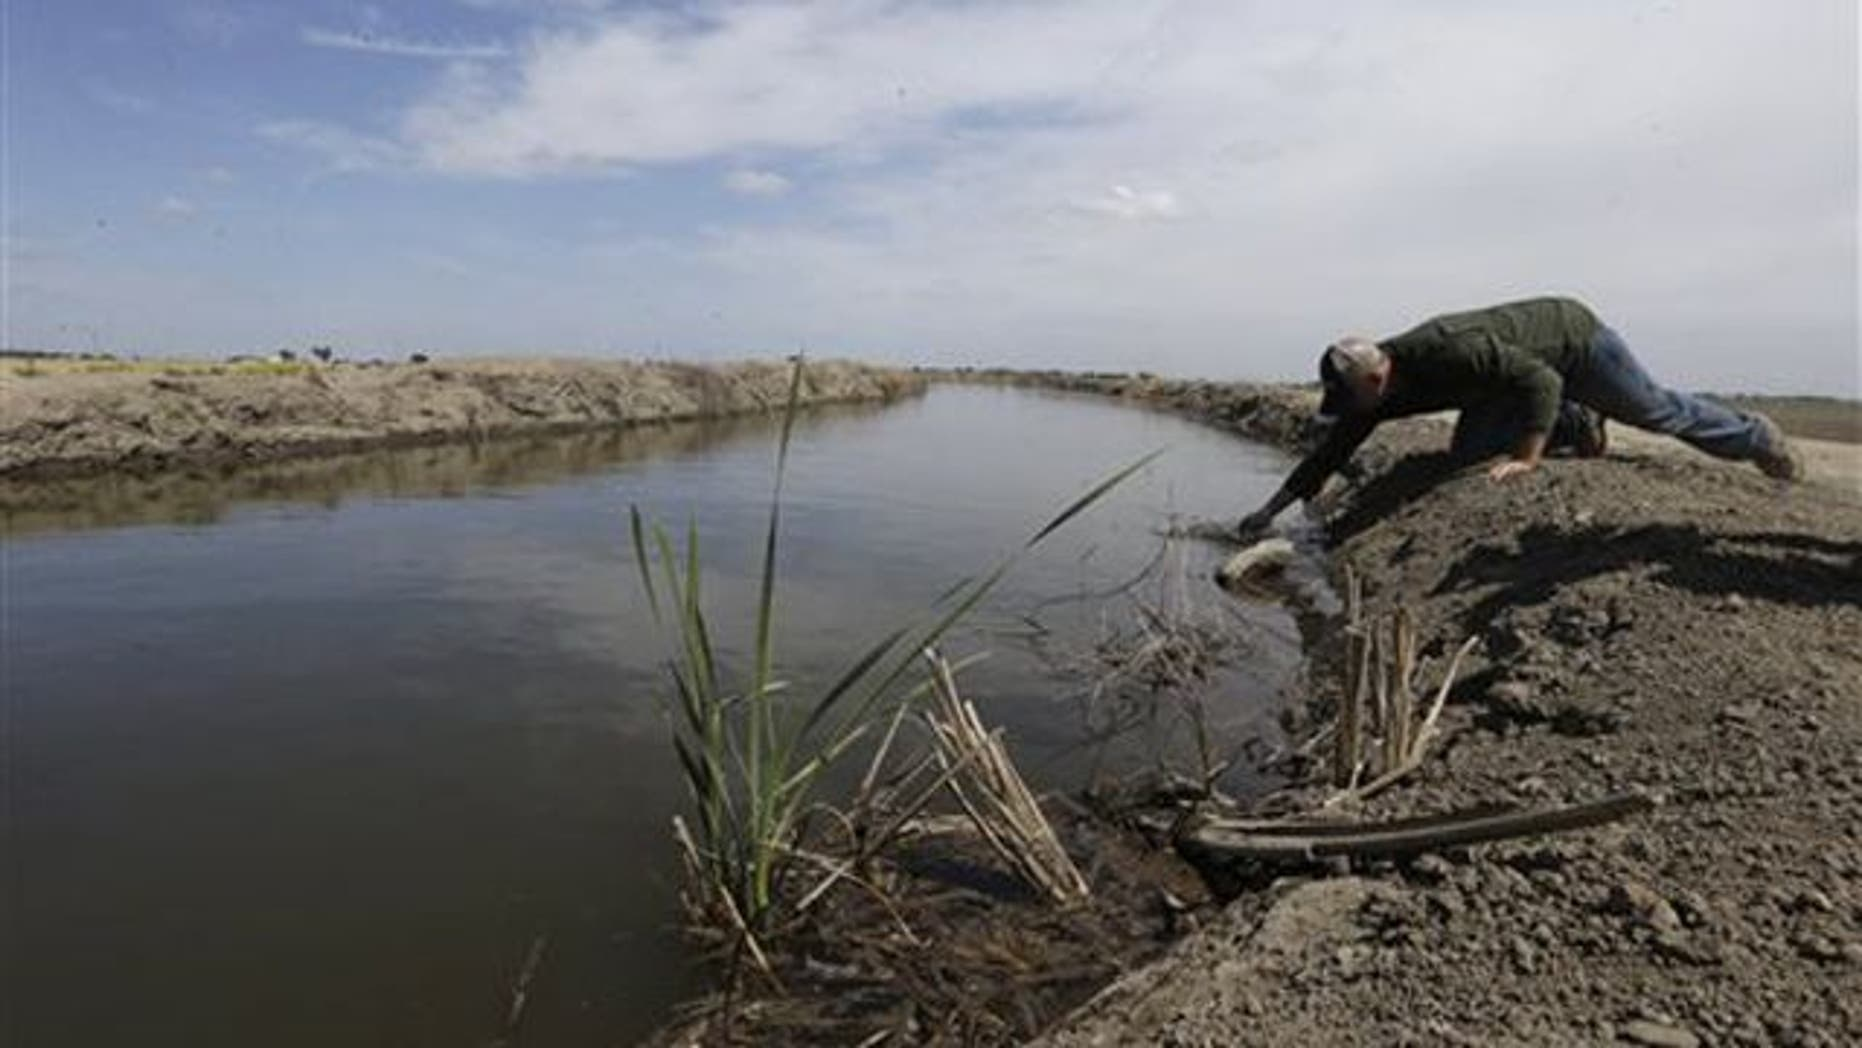 Farmer Gino Celli draws a water sample to check the salinity in an irrigation canal that runs through his fields near Stockton, Calif. in May 2015.